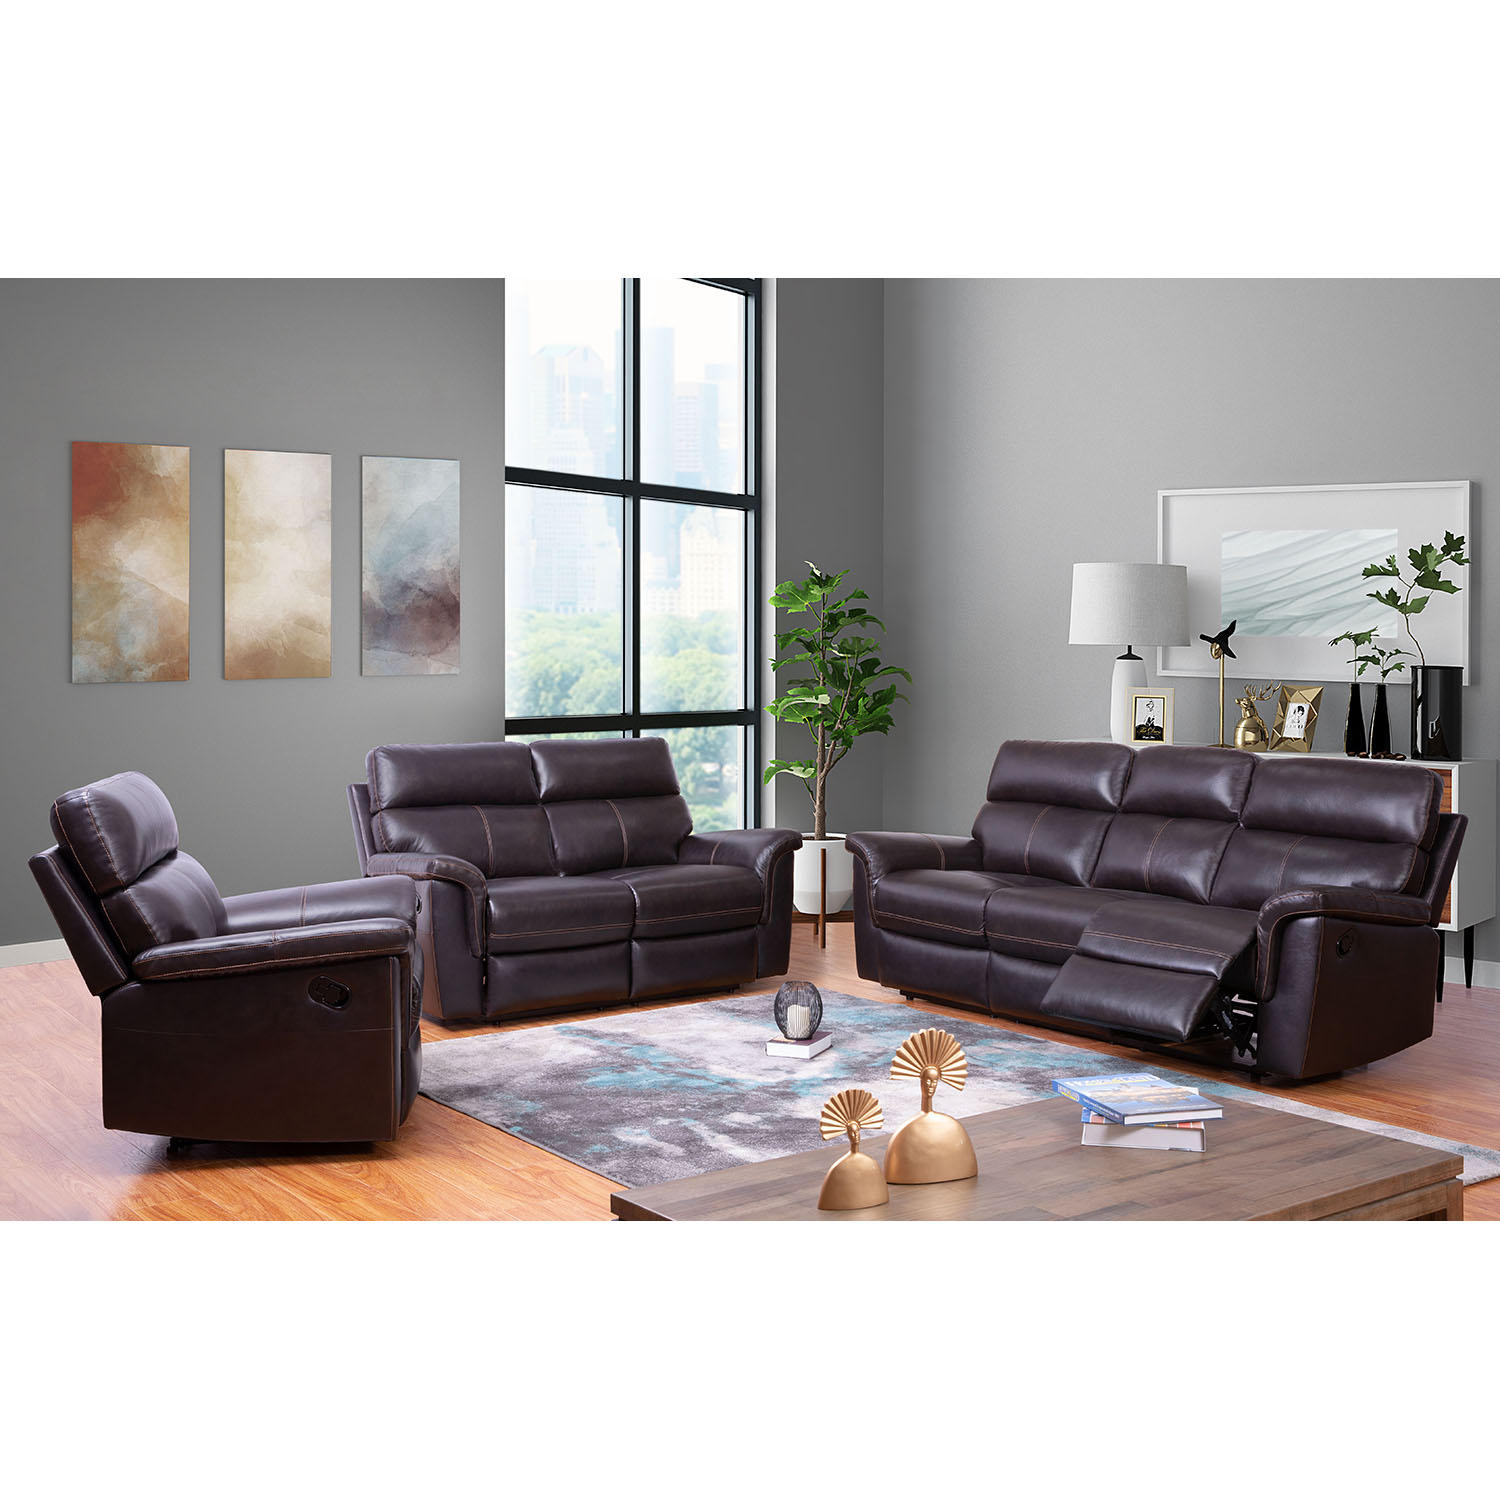 Franklin Top-Grain Leather 3-Piece Reclining Sofa Set